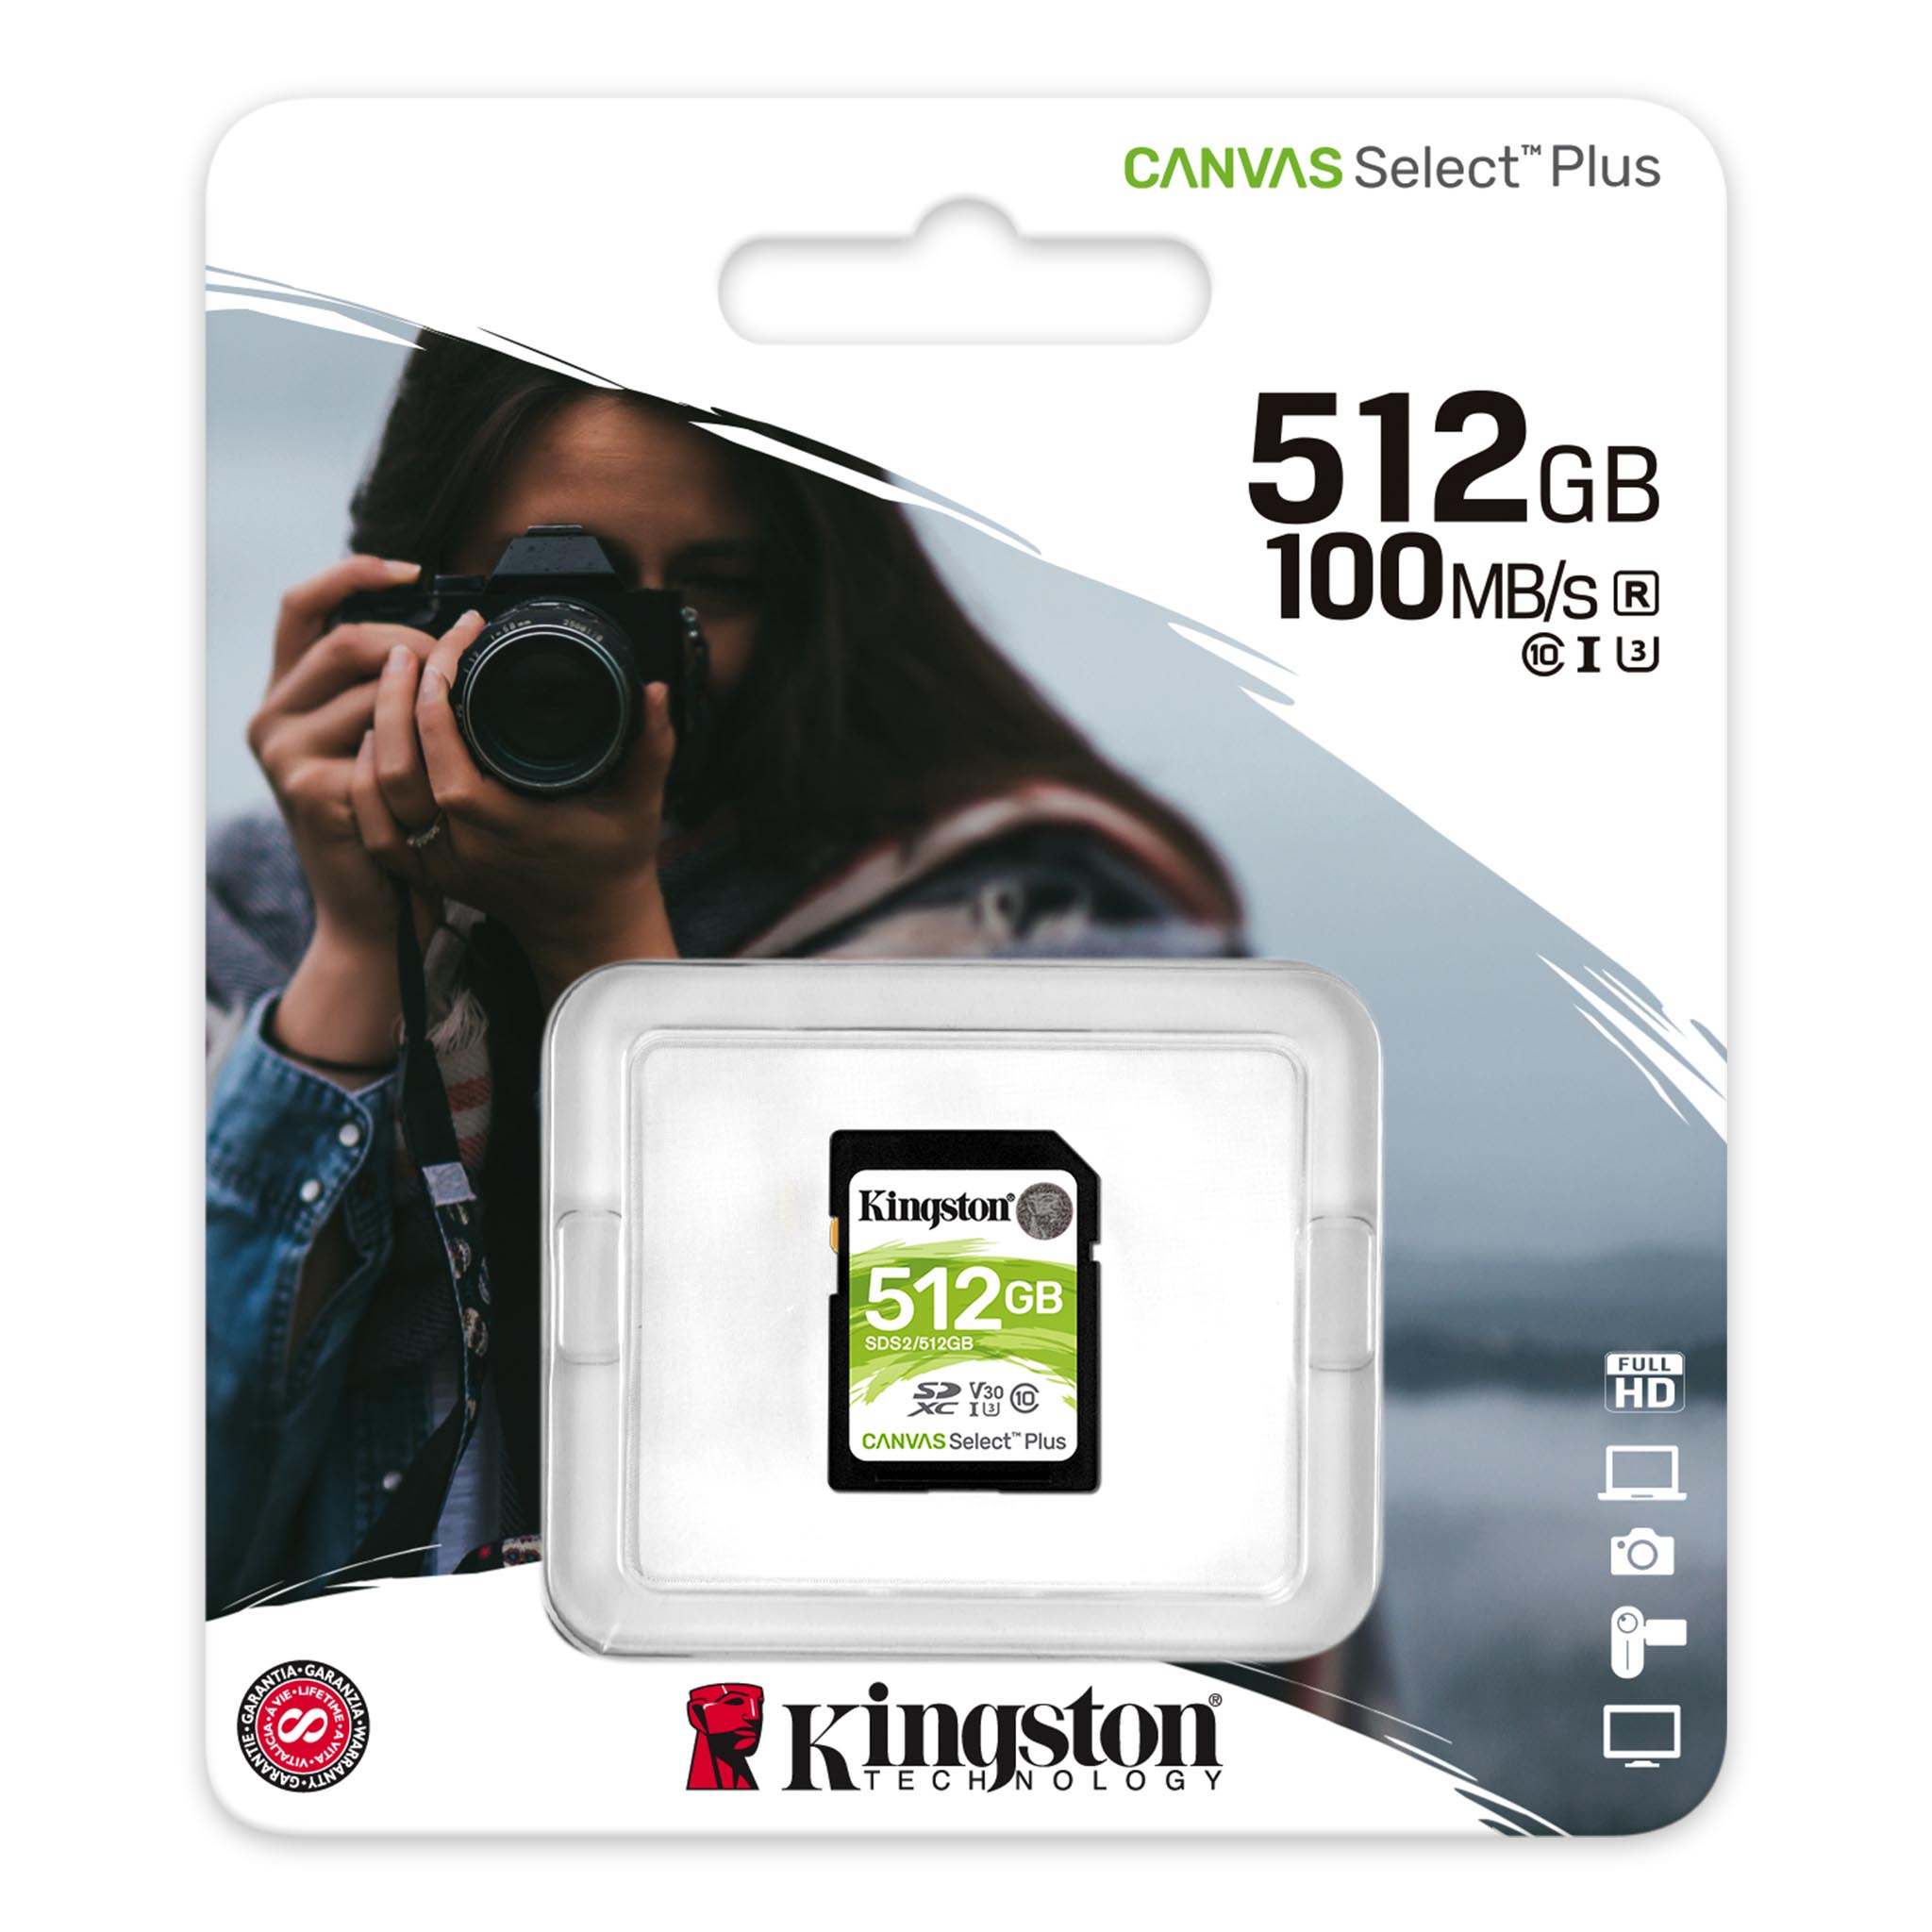 Kingston 64GB Samsung SM-G970 MicroSDXC Canvas Select Plus Card Verified by SanFlash. 100MBs Works with Kingston